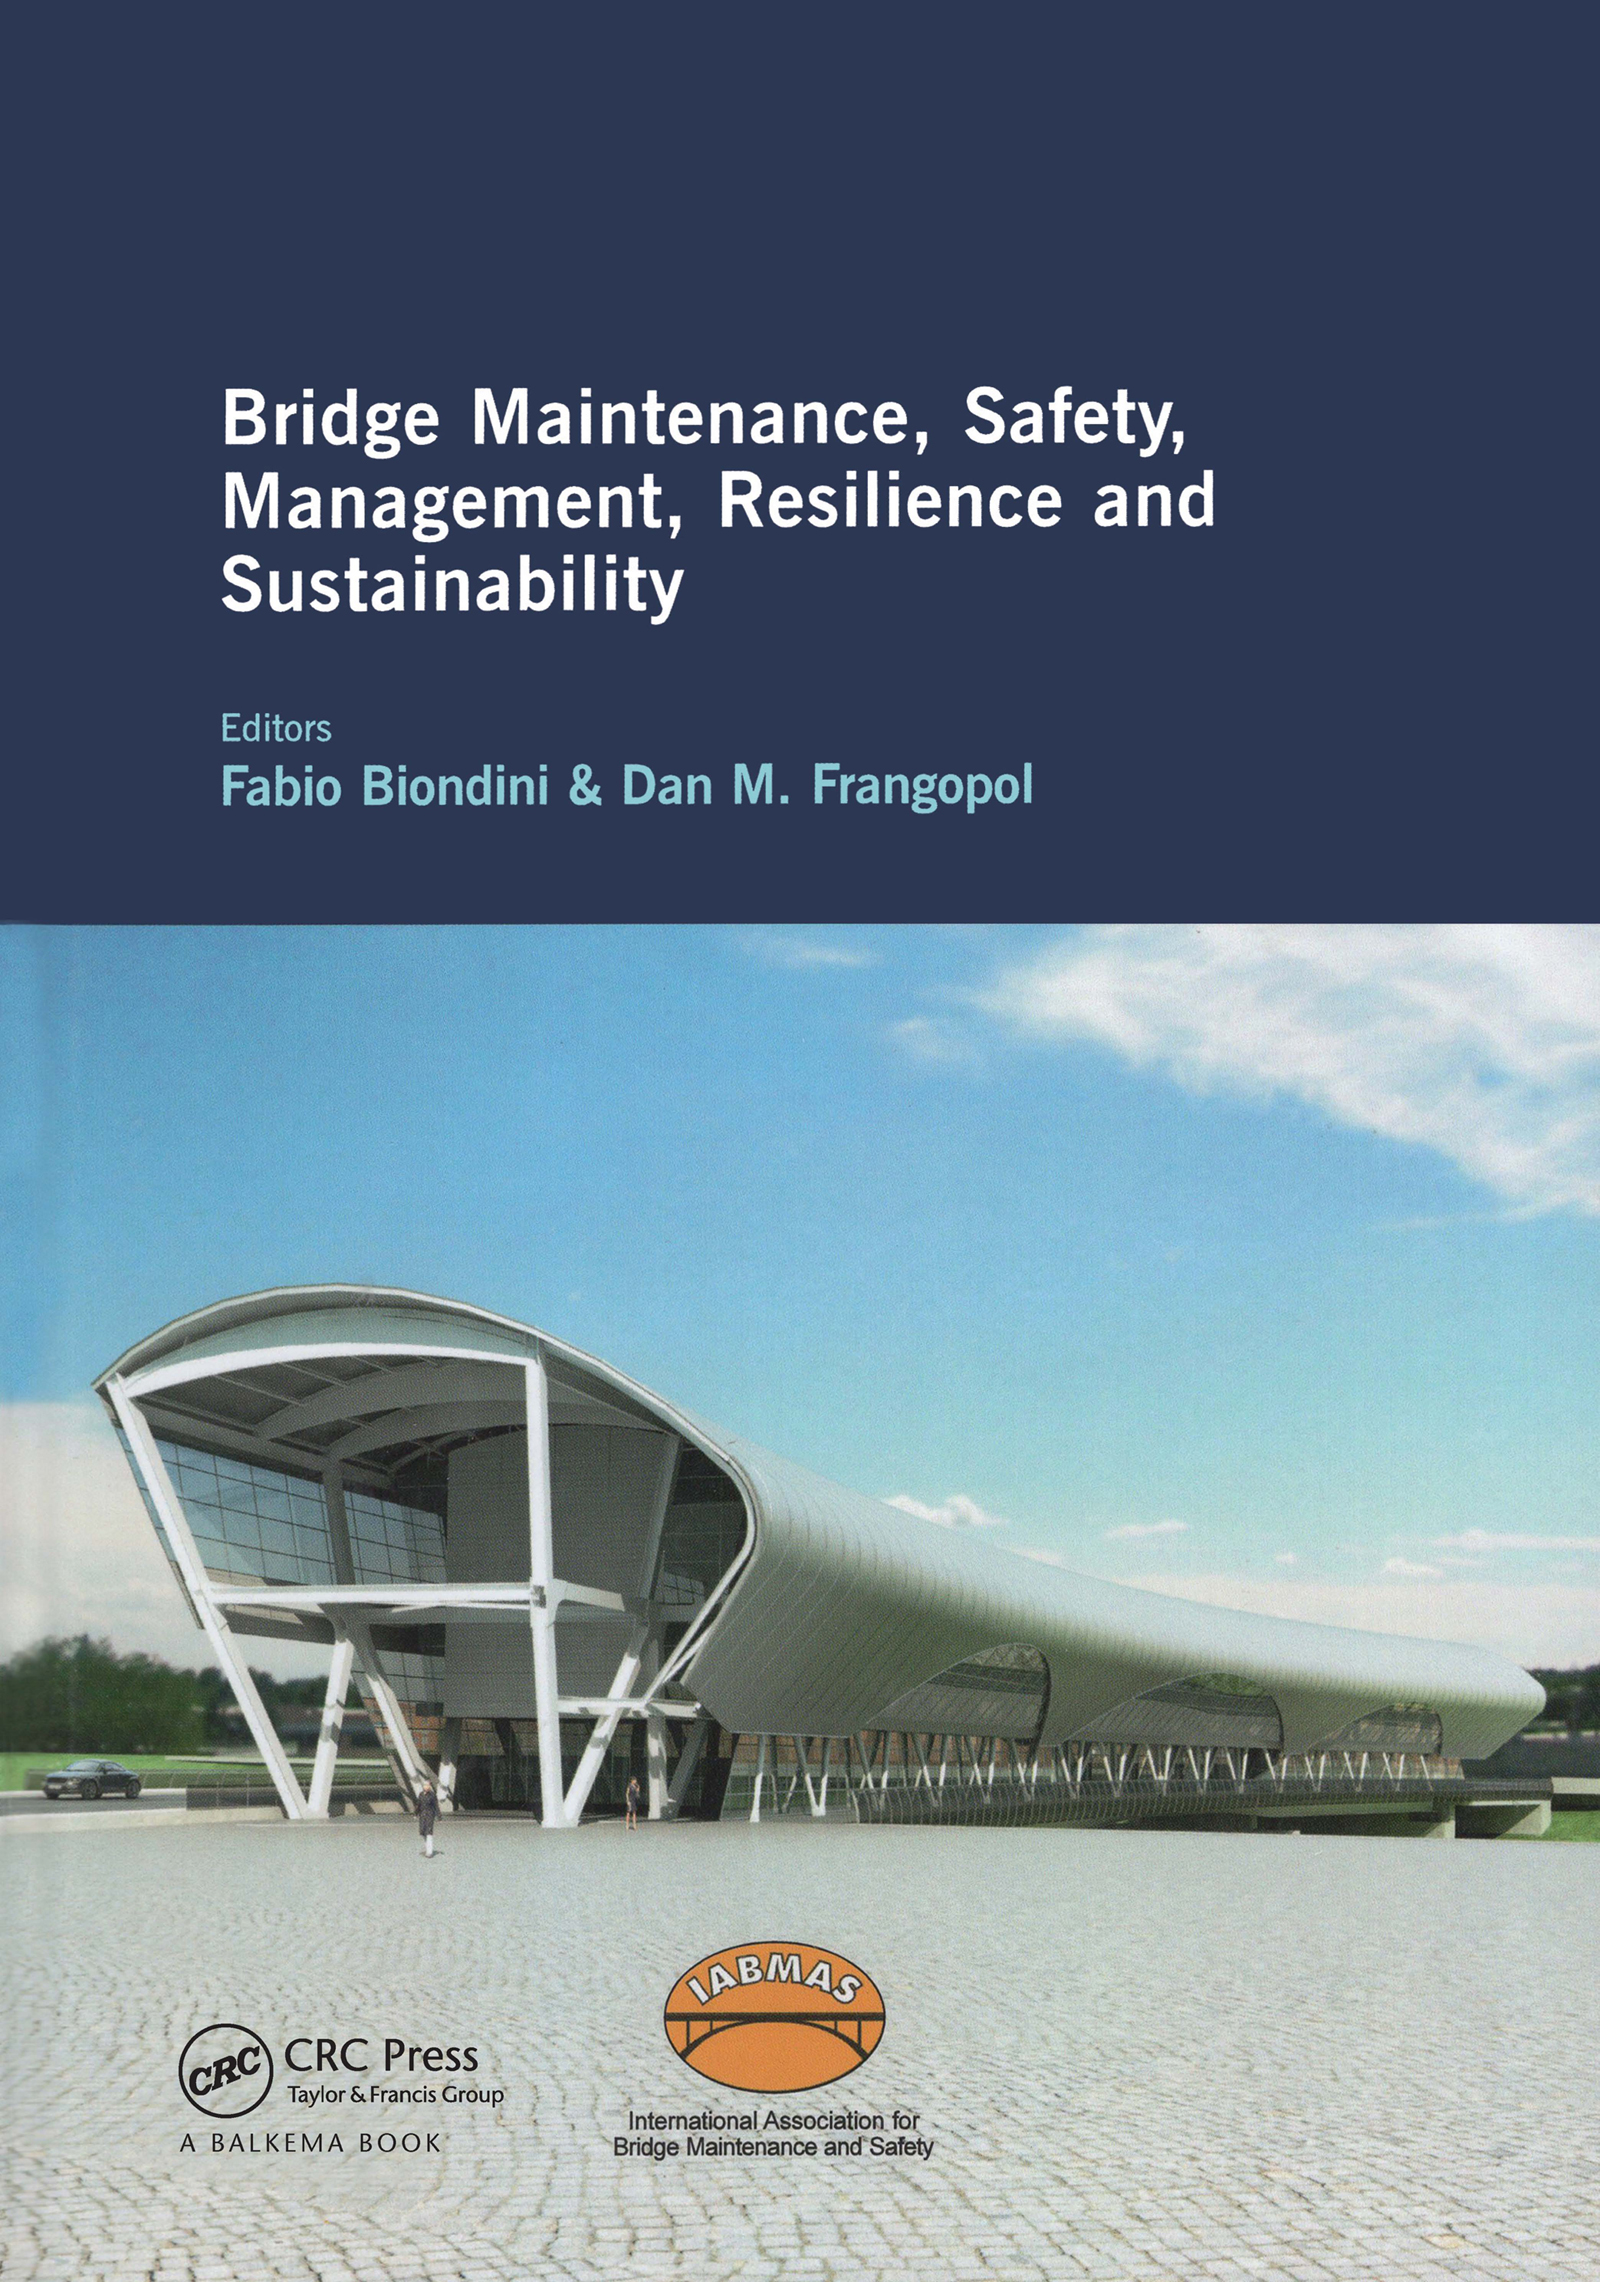 Bridge Maintenance, Safety, Management, Resilience and Sustainability: Proceedings of the Sixth International IABMAS Conference, Stresa, Lake Maggiore, Italy, 8-12 July 2012 book cover